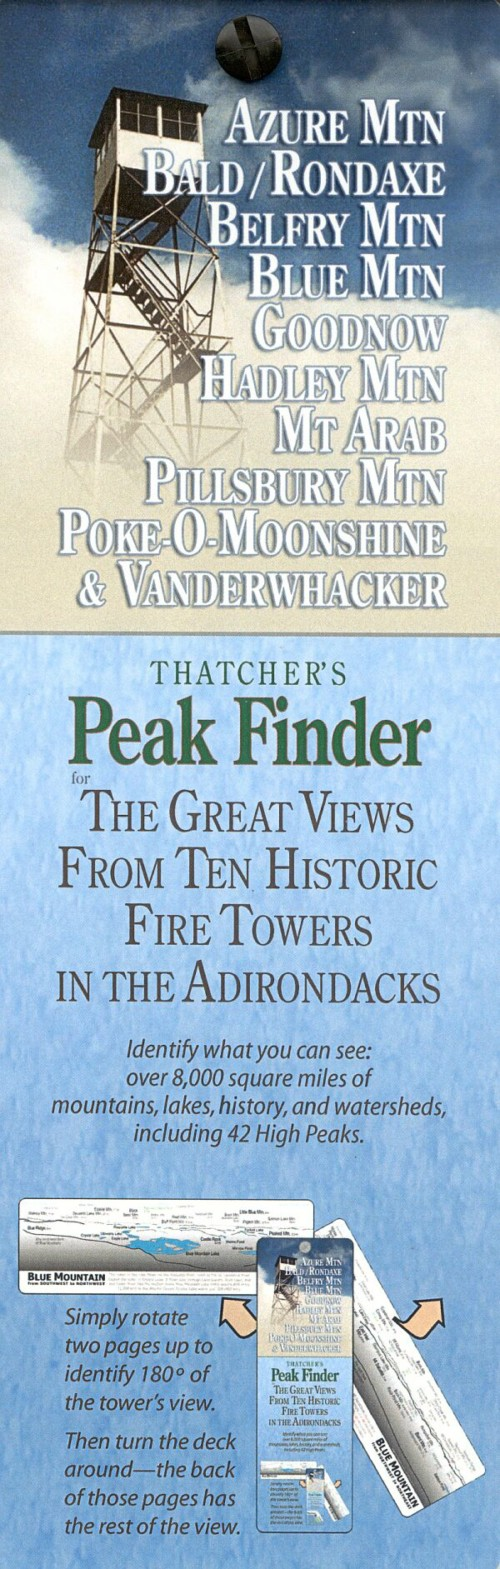 Thatcher's Peak Finder Fire Towers